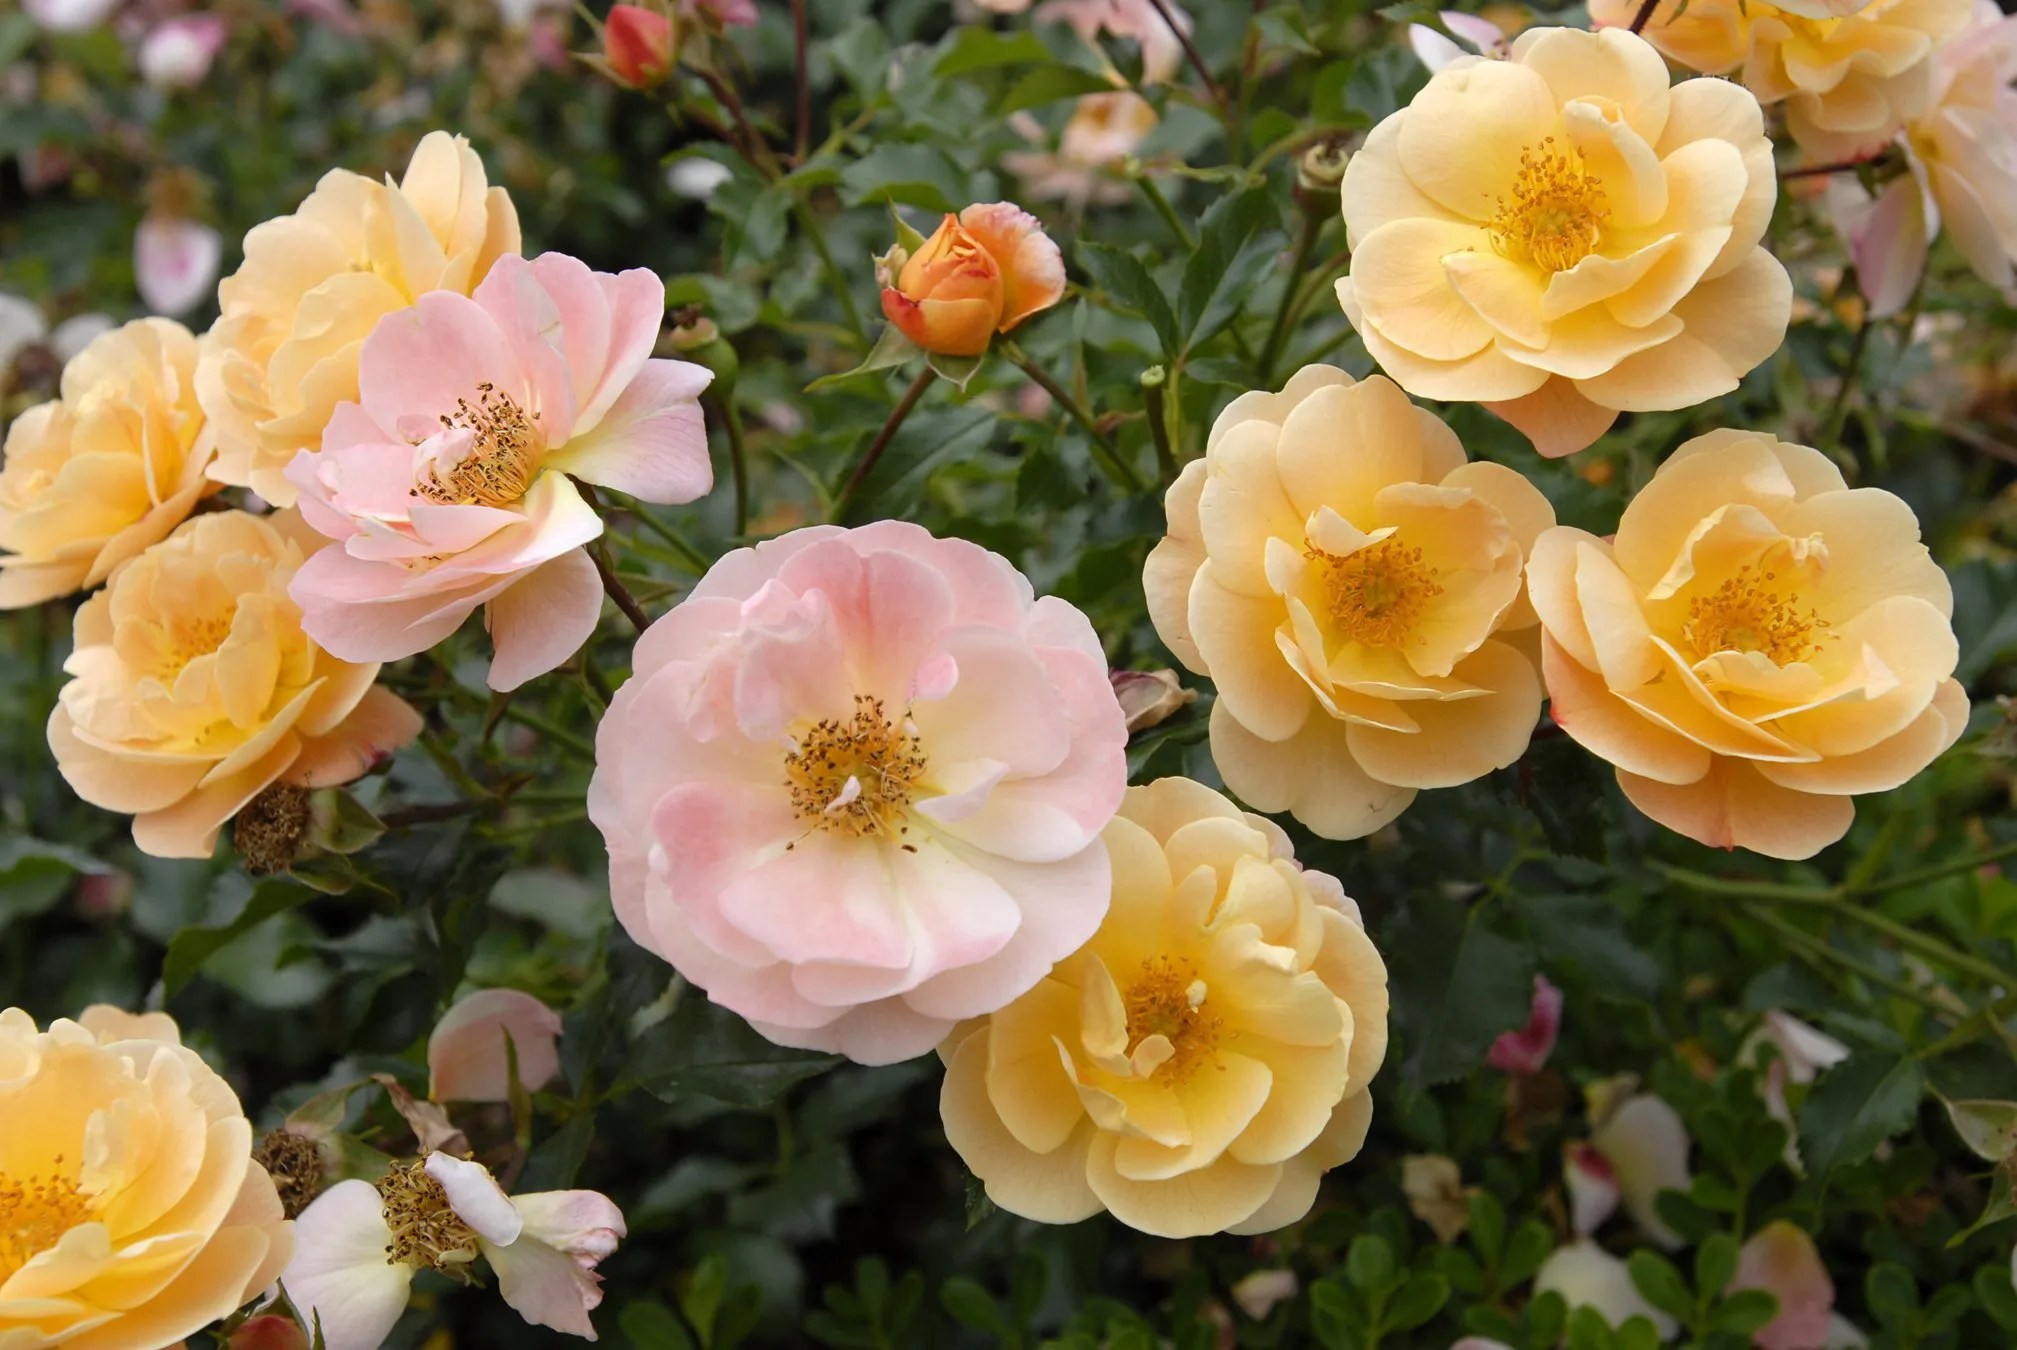 Fun New Ways You Can Make Roses Part Of Your Garden The